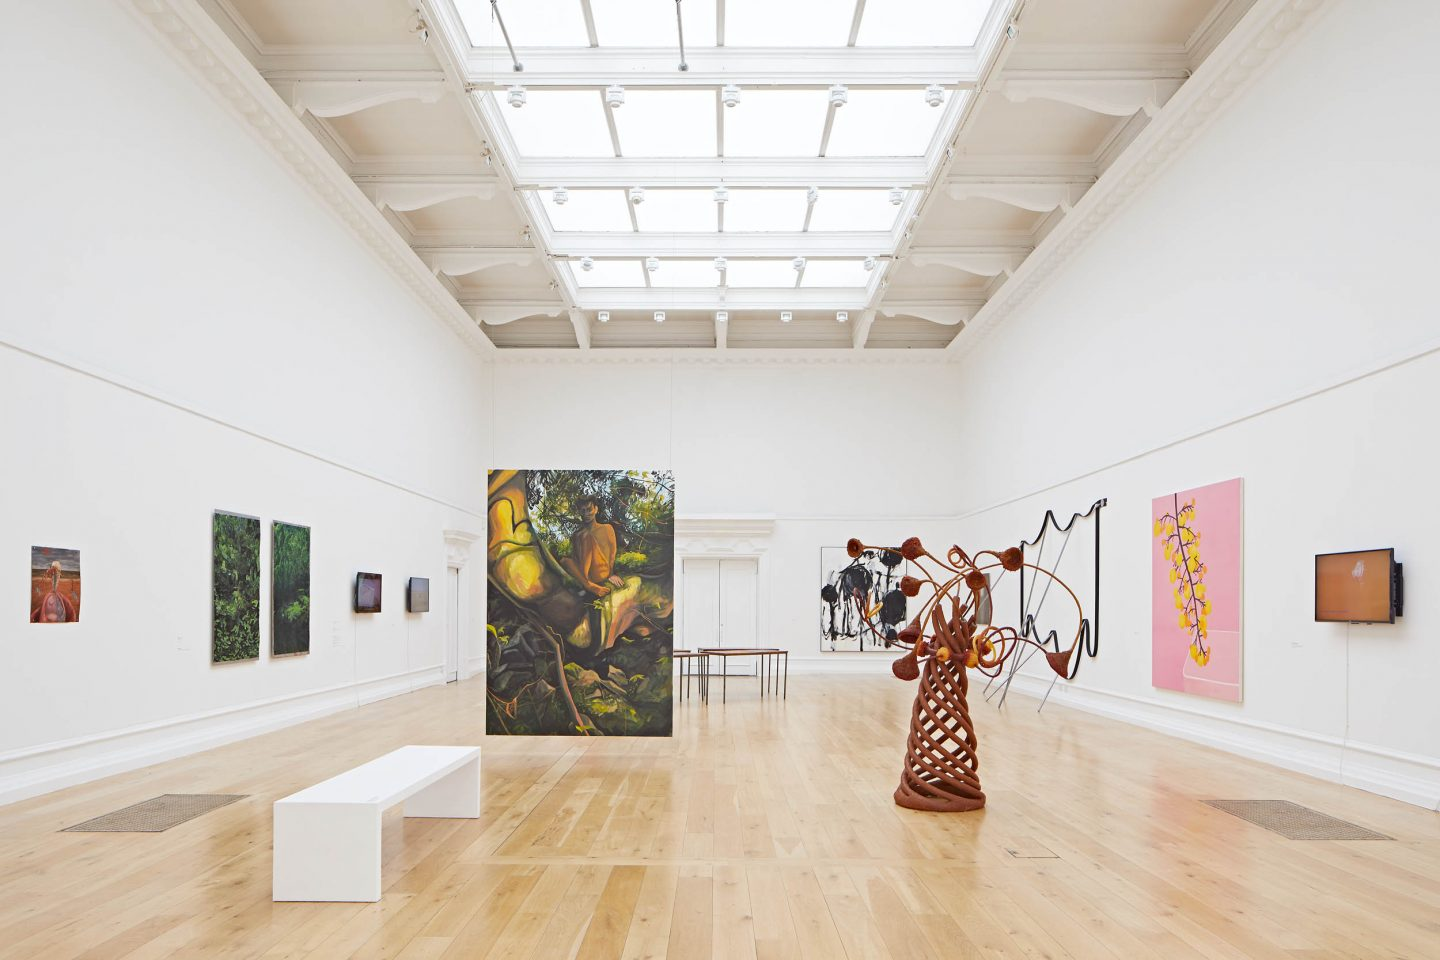 The SLG's Main Gallery with paintings on the wall, a sculpture with a conical shape and tree like limbs protruding out, and a painting hangs from the ceiling in the middle of the room